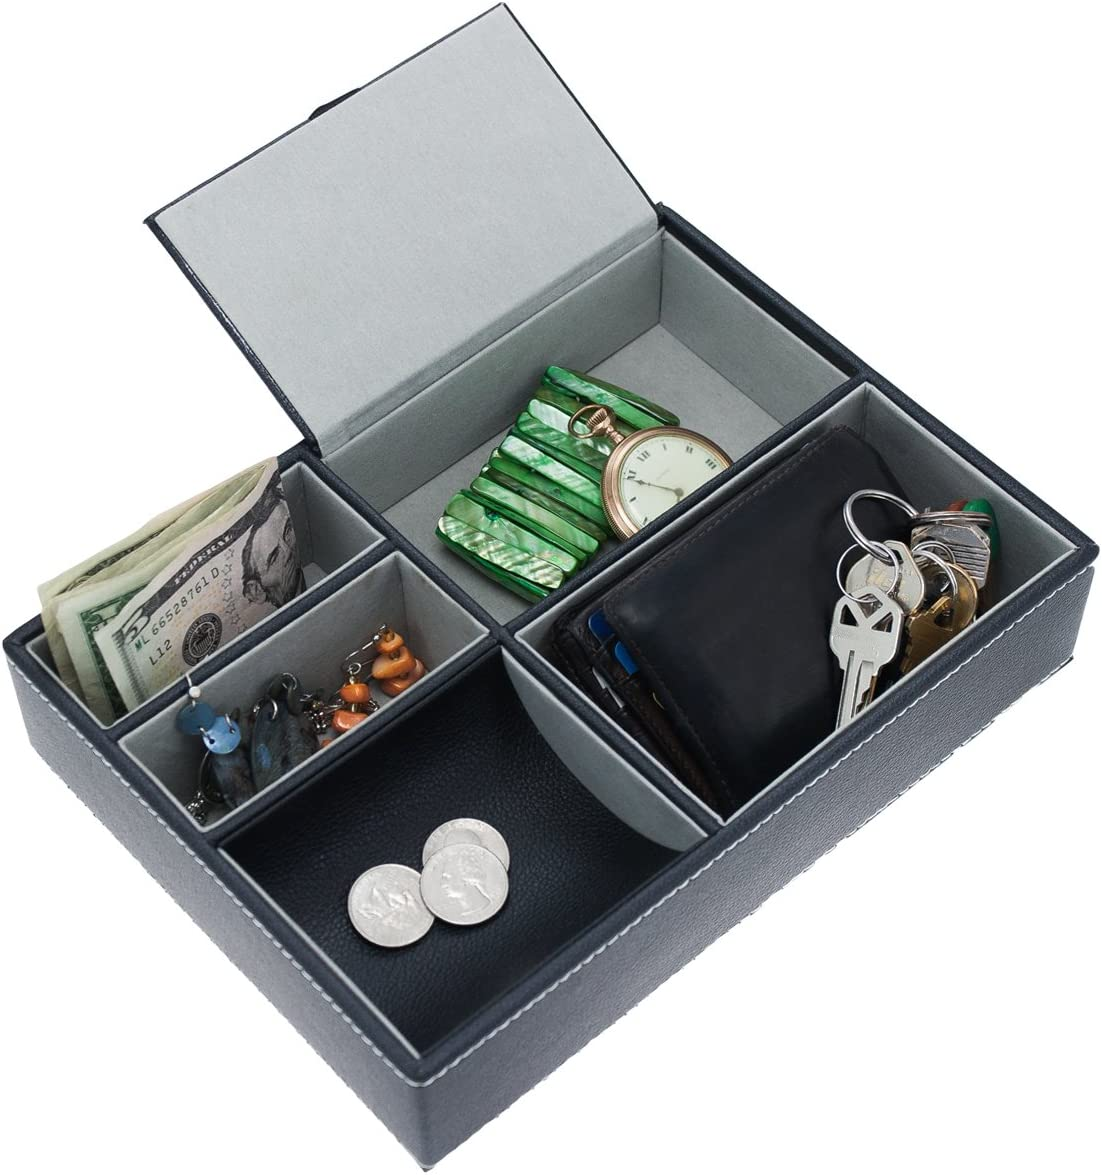 Faux-Leather Valet Tray Felt Compartments Jewelry Wallet Key Coins Storage